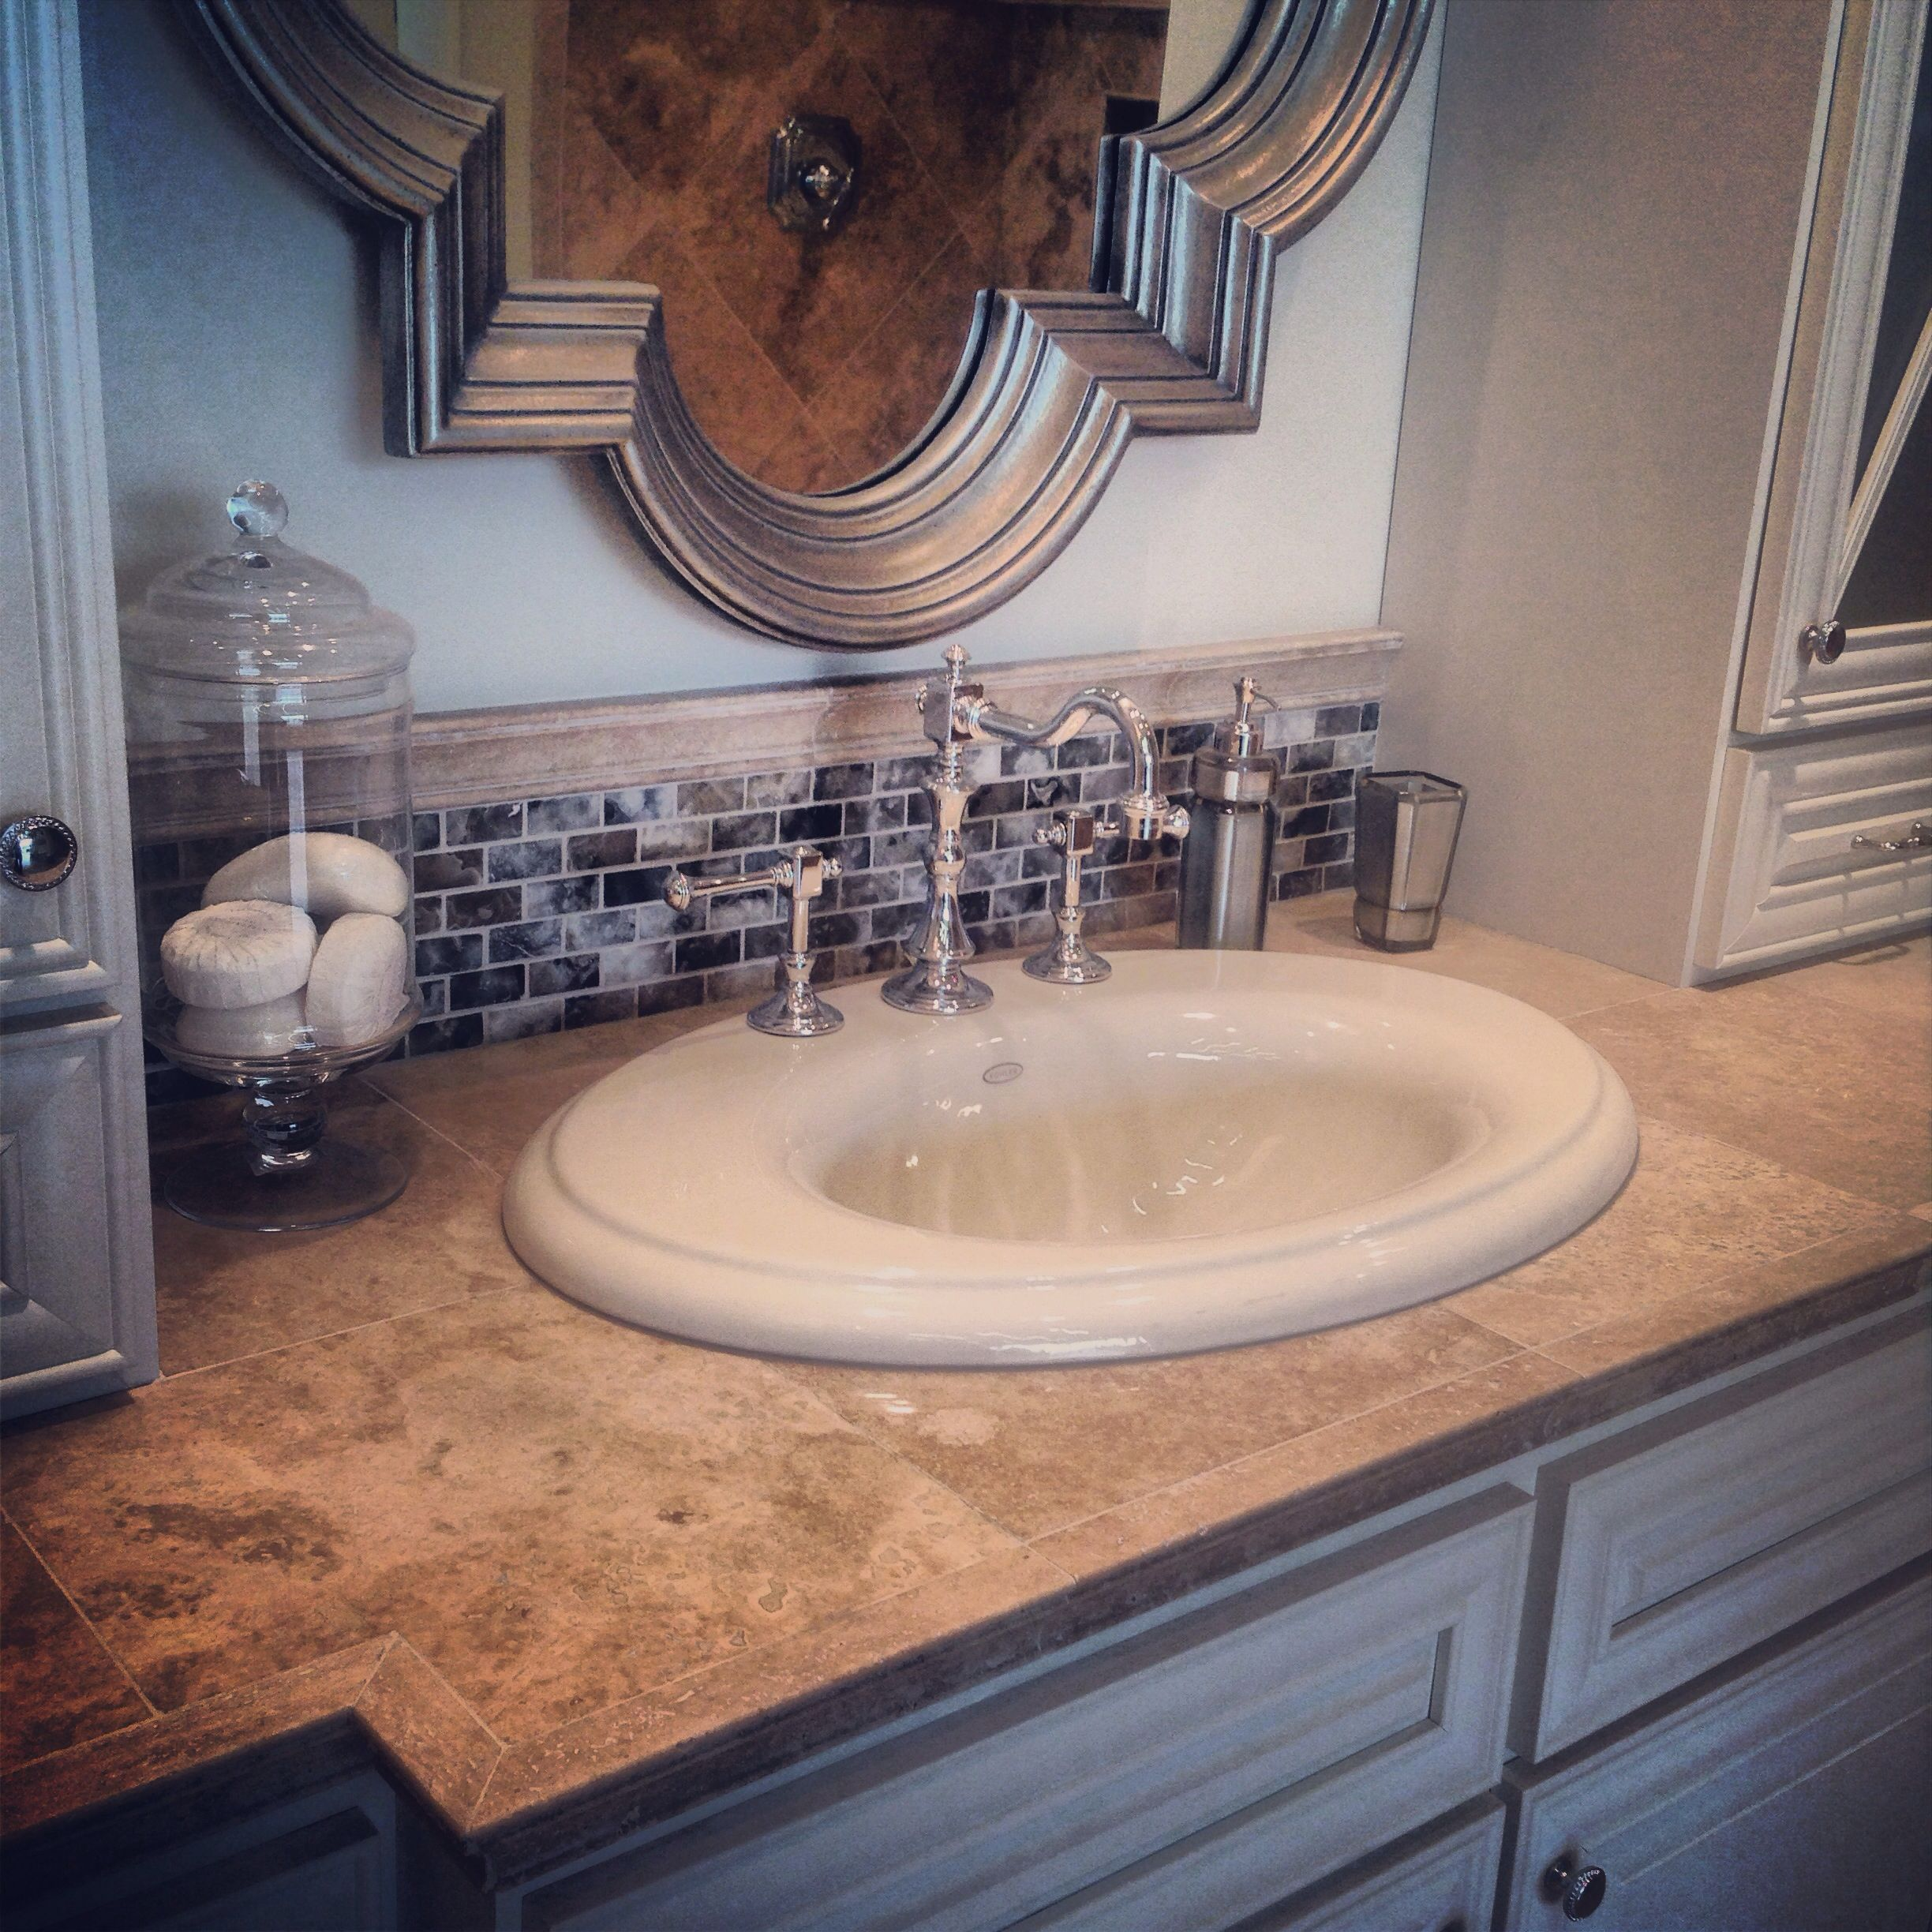 Best Countertops For Bathroom: Travertine Tile Countertop For The Vanity. #thetileshop